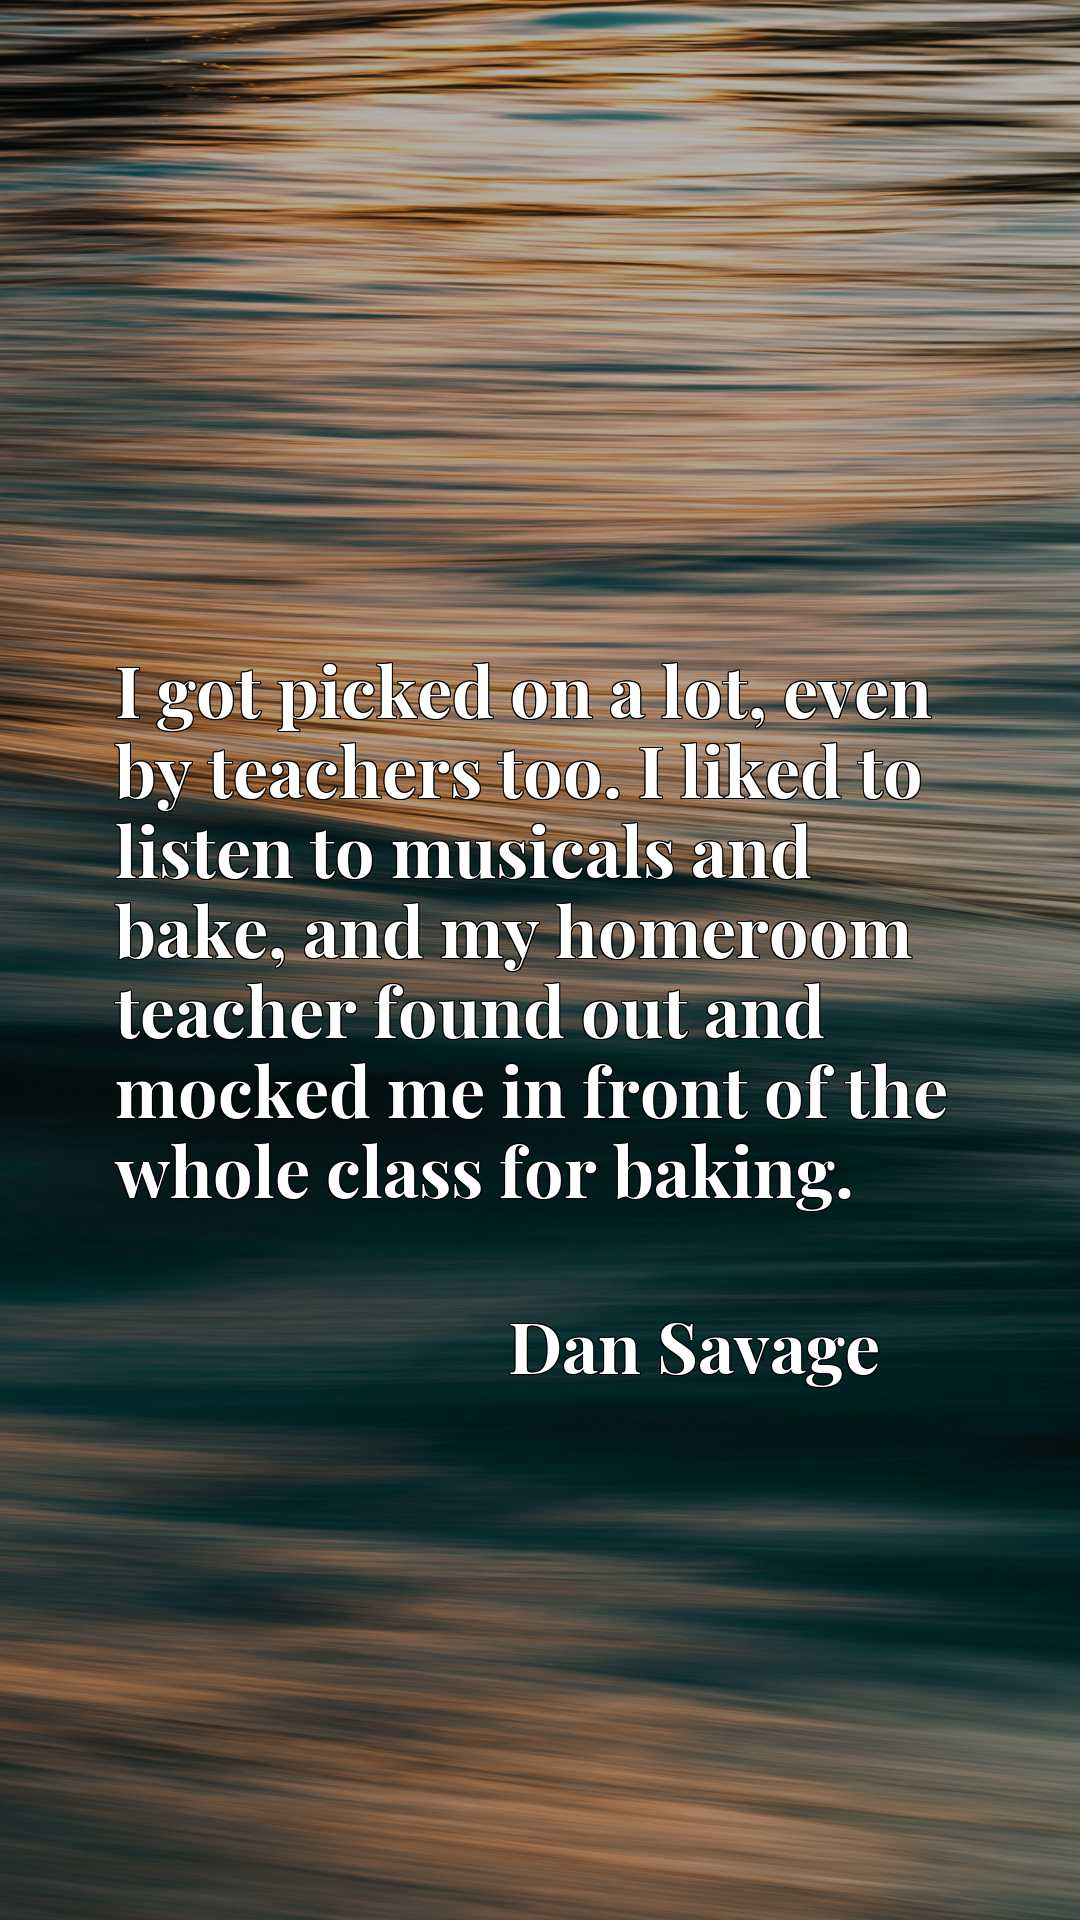 Quote Picture :I got picked on a lot, even by teachers too. I liked to listen to musicals and bake, and my homeroom teacher found out and mocked me in front of the whole class for baking.